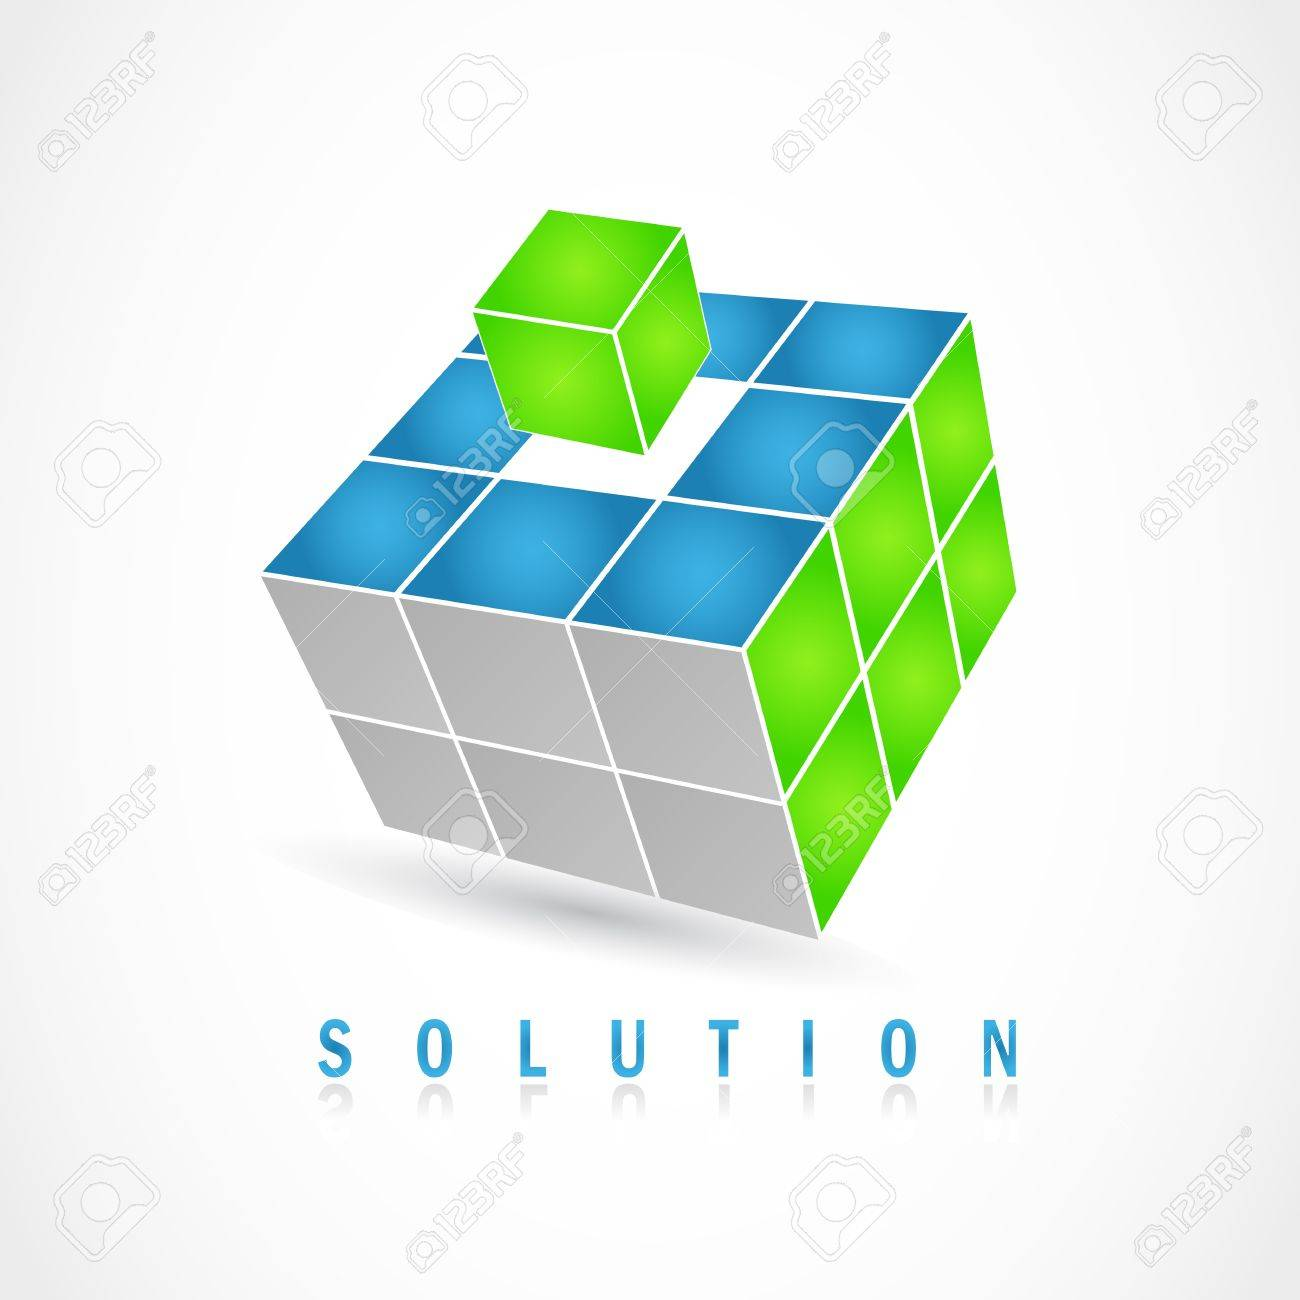 Cube puzzle in vector with 3d effect - 13655209